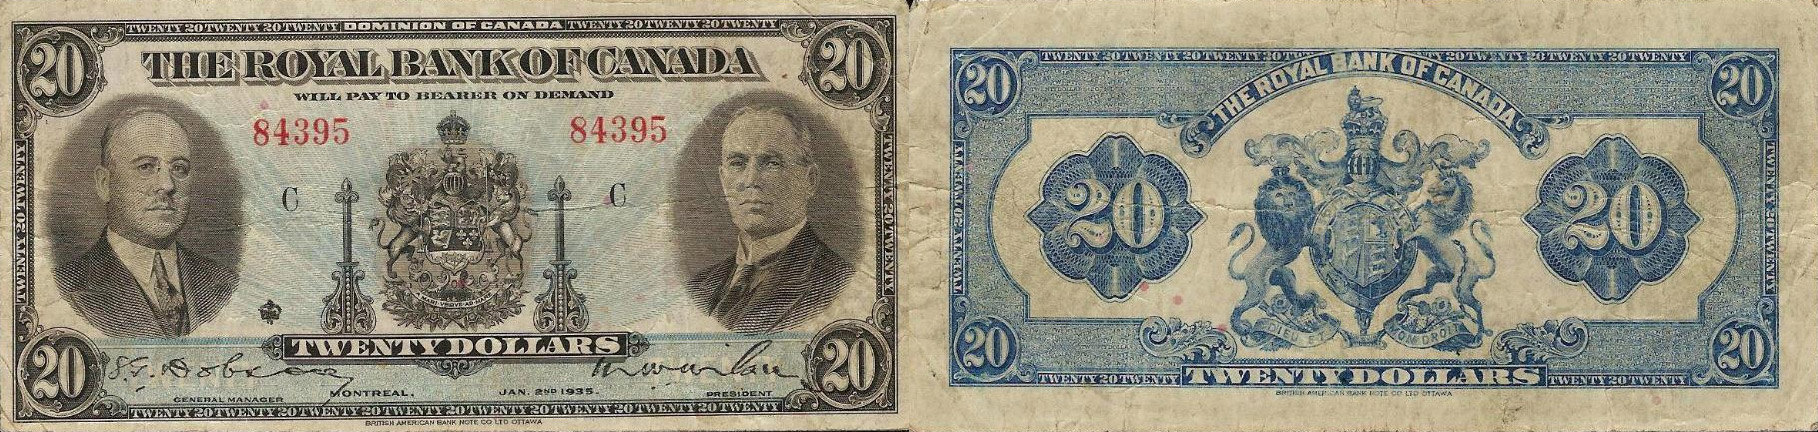 20 dollars 1935 - Royal Bank of Canada banknotes